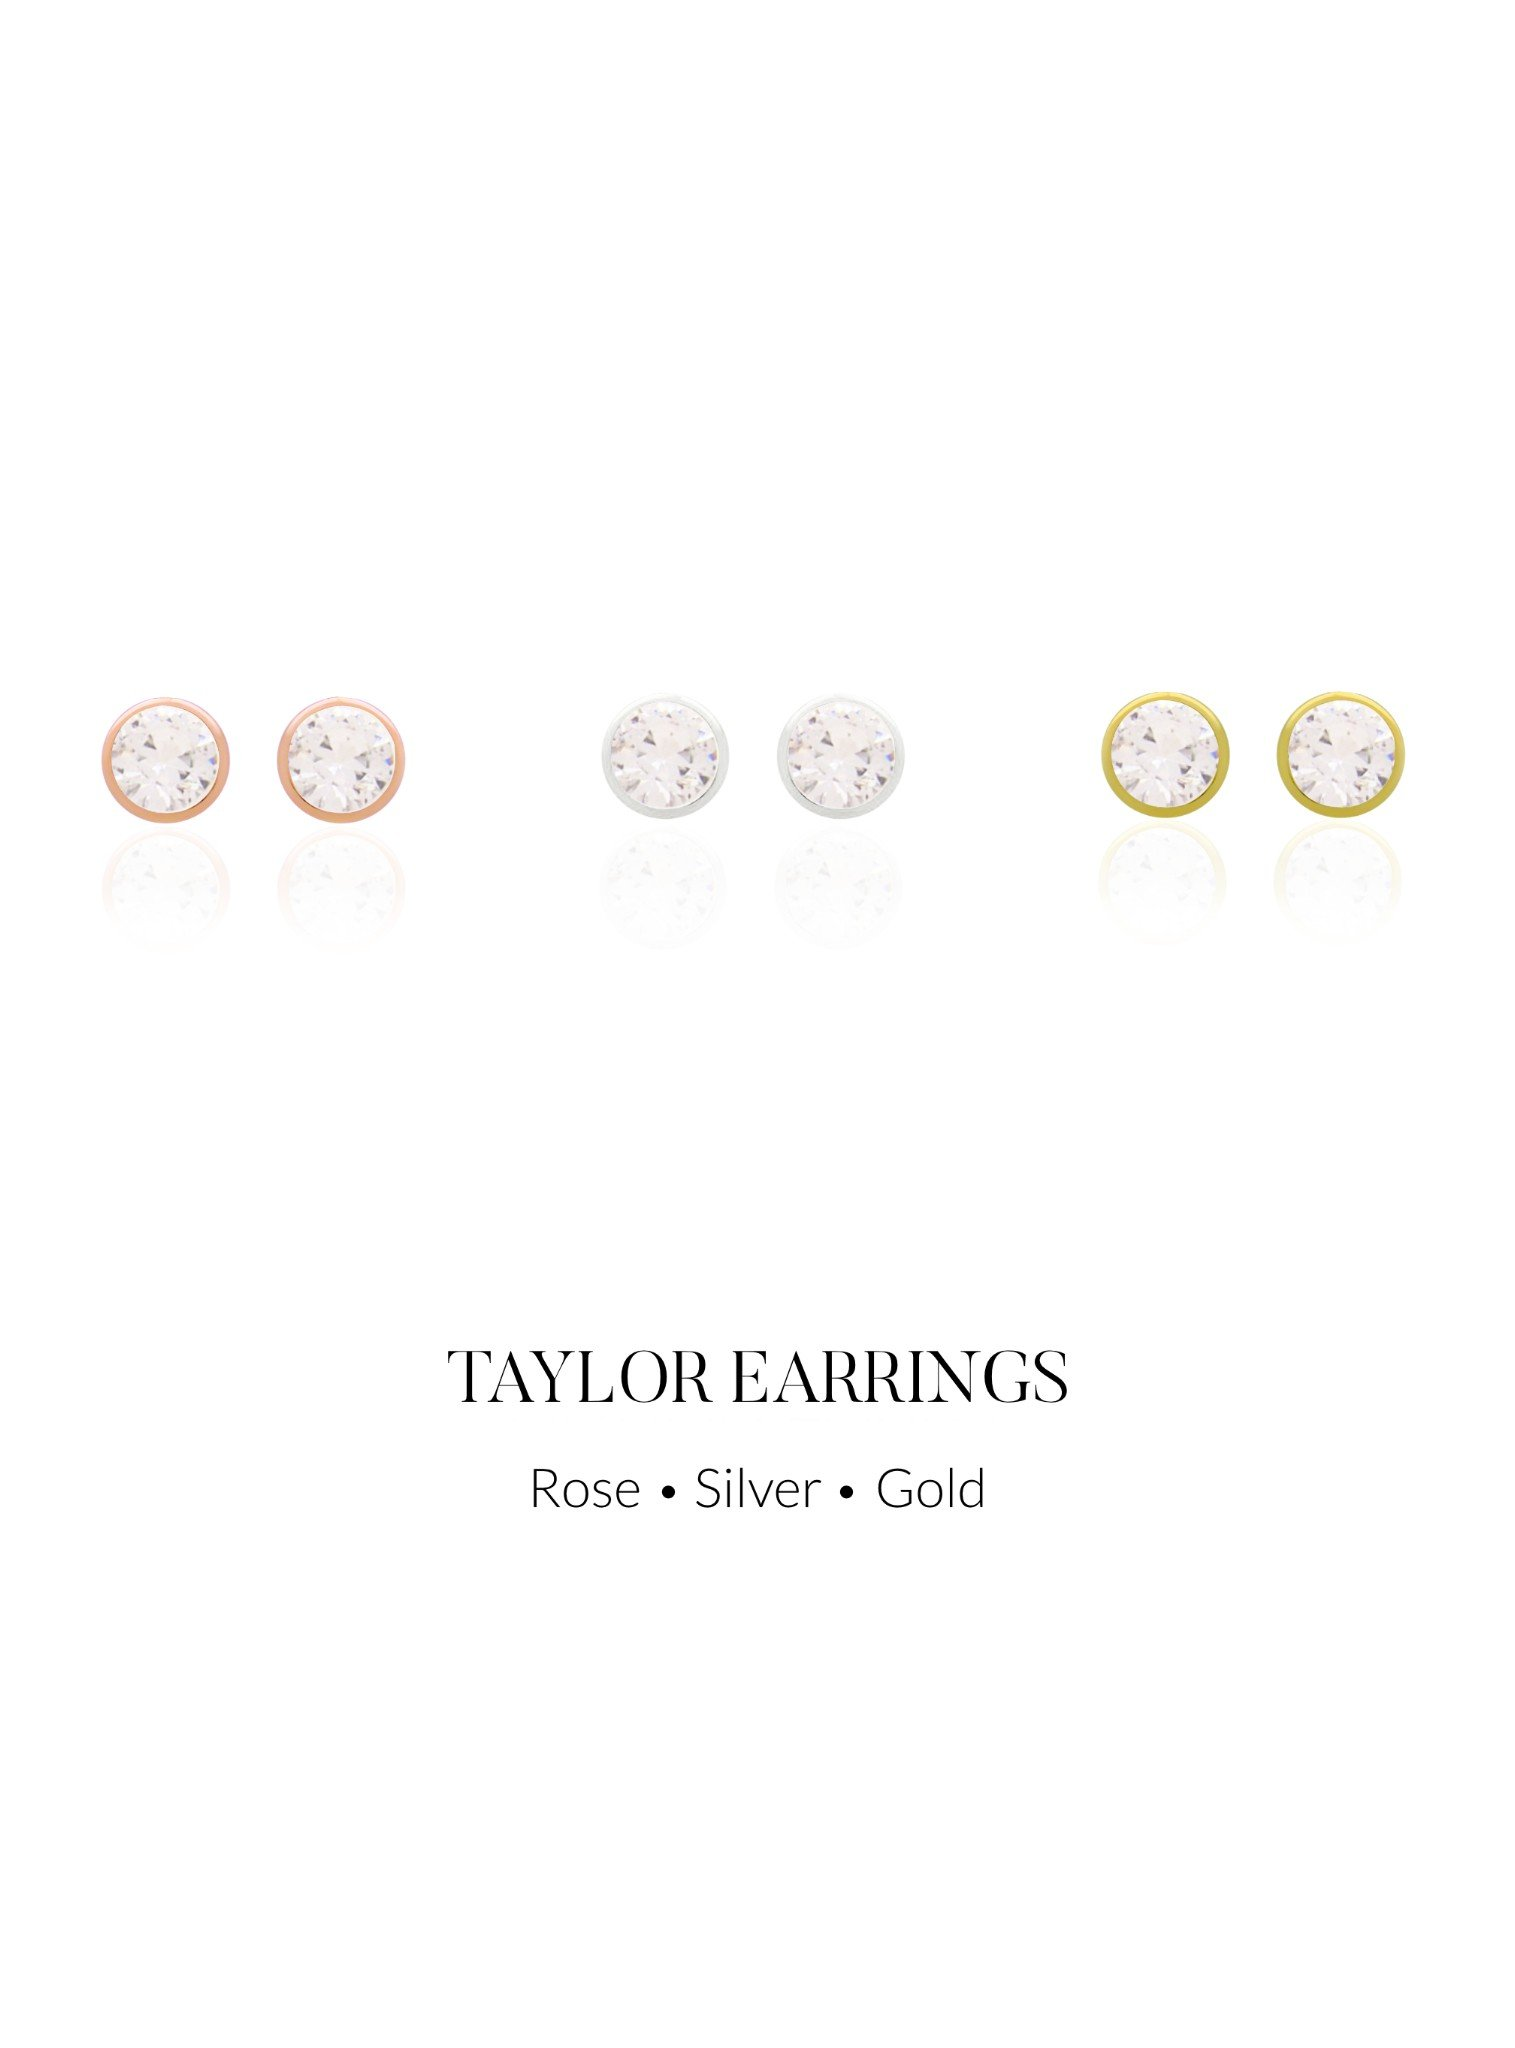 Taylor 3mm CZ Stud Earrings in Rose Gold